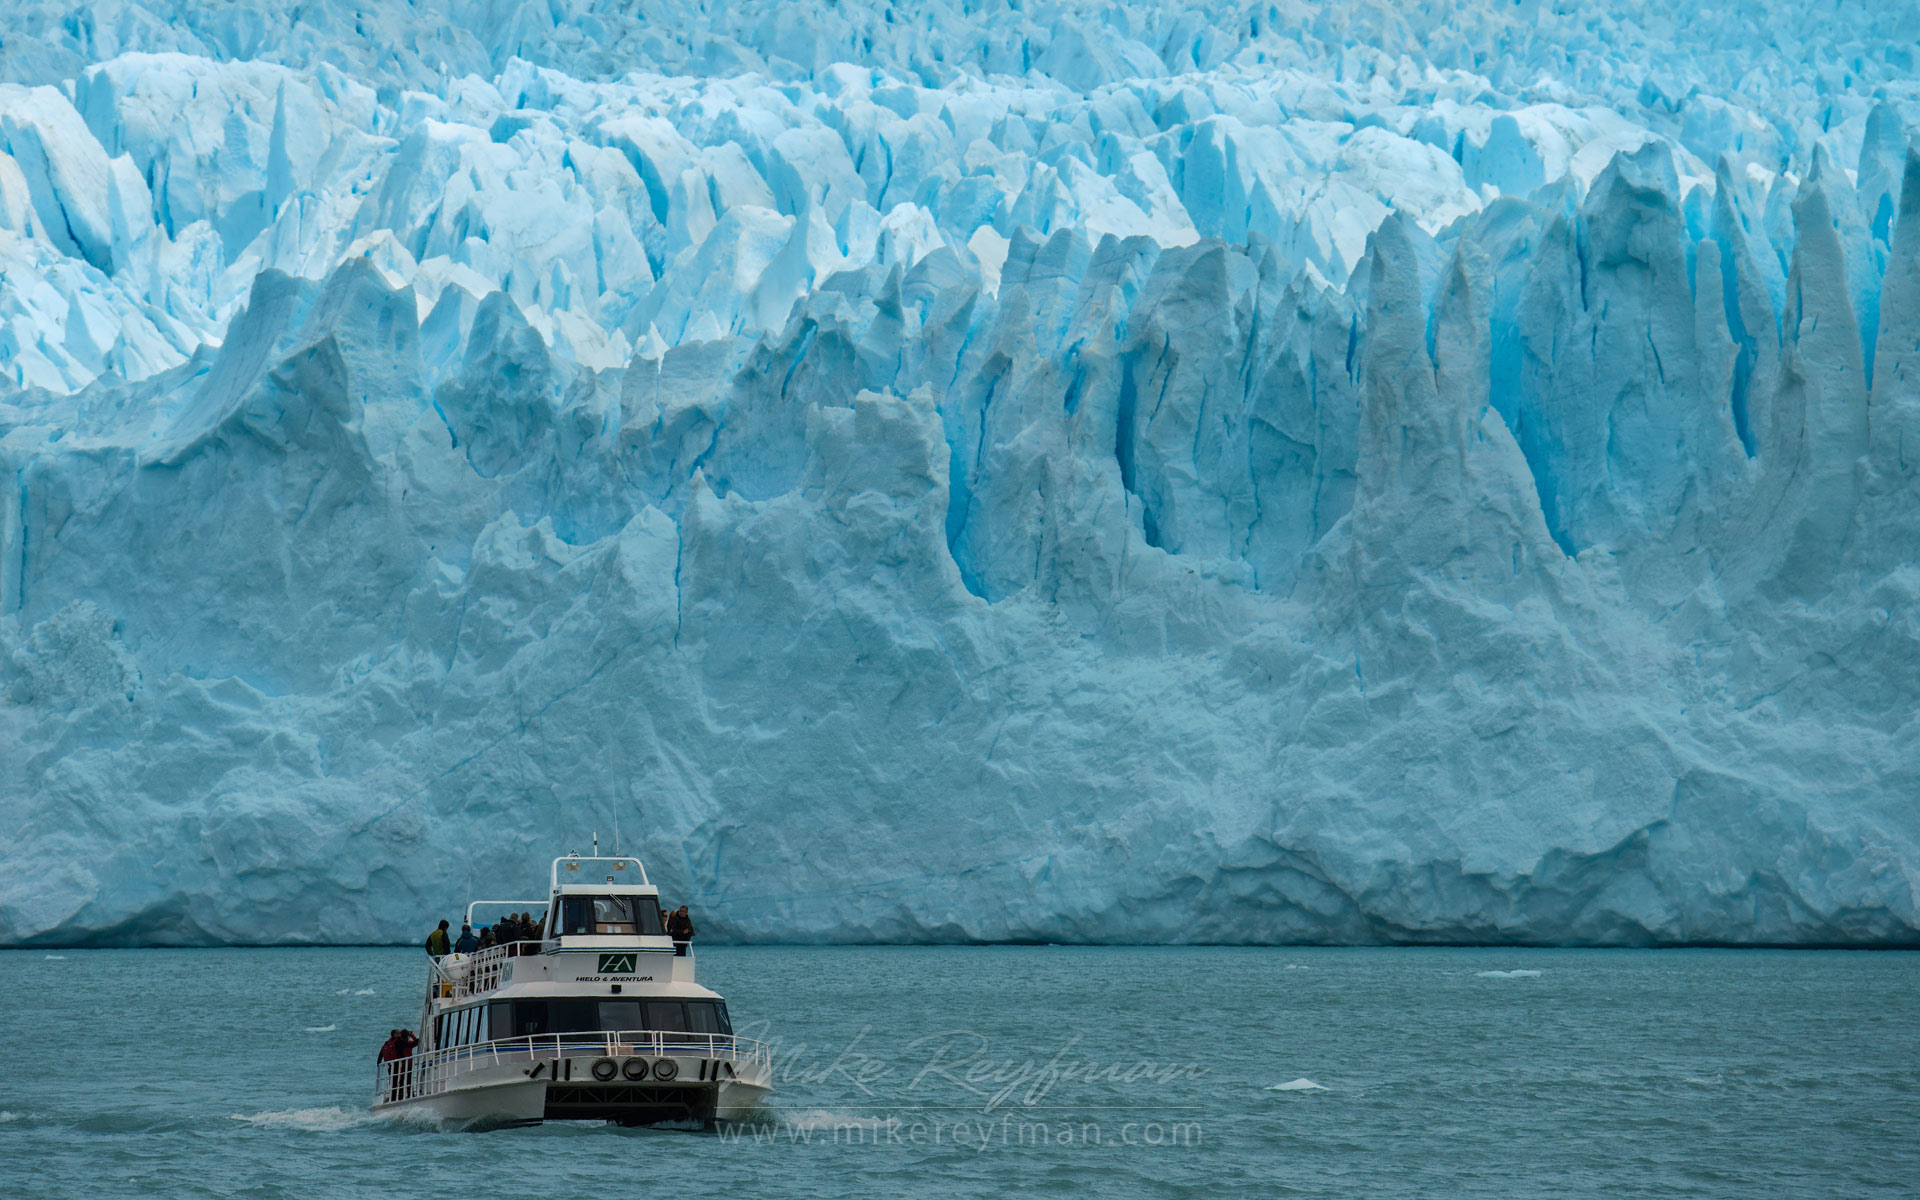 Tourist boat on Lago Argentino going back from Perito Moreno Glacier. Lago Argentino, Los Glaciares National Park, Patagonia, Argentina. - Fitzroy-Cerro-Torre-Perito-Moreno-Patagonia-Argentina - Mike Reyfman Photography